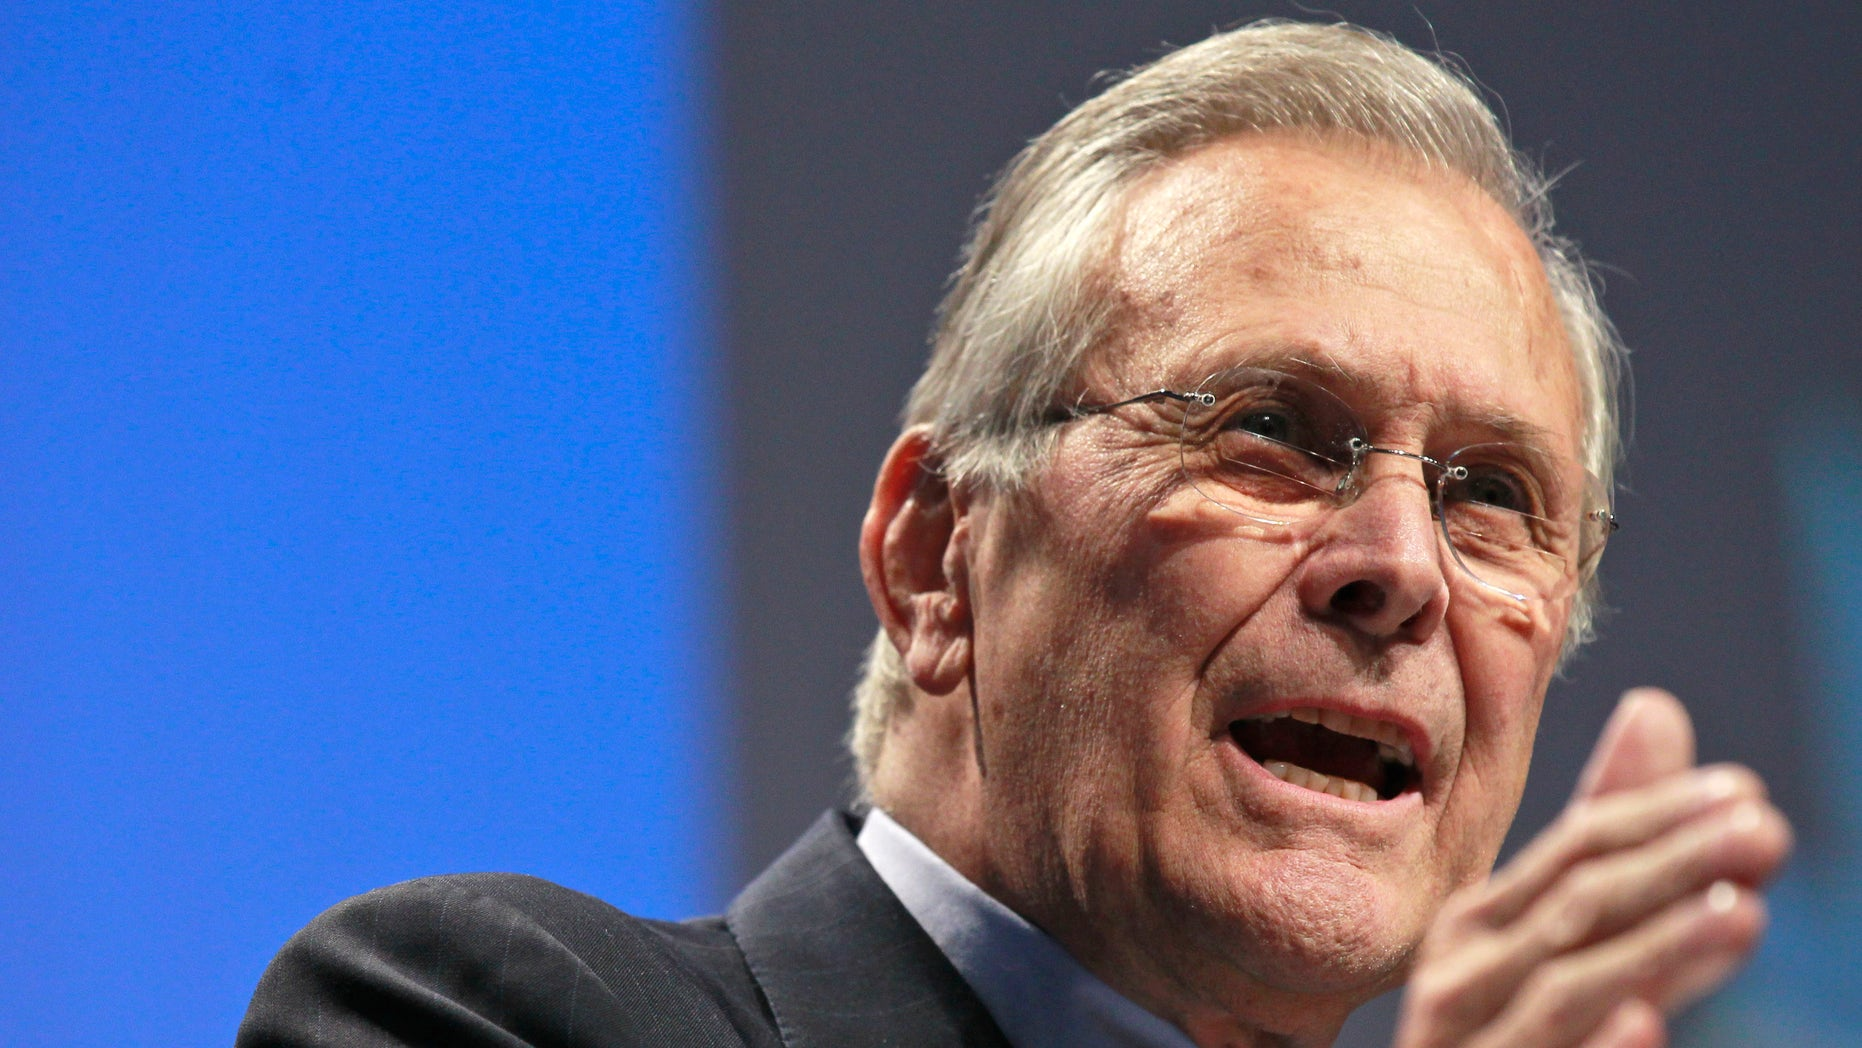 Feb. 10: Former Defense Secretary Donald H. Rumsfeld addresses the Conservative Political Action Conference in Washington, D.C.